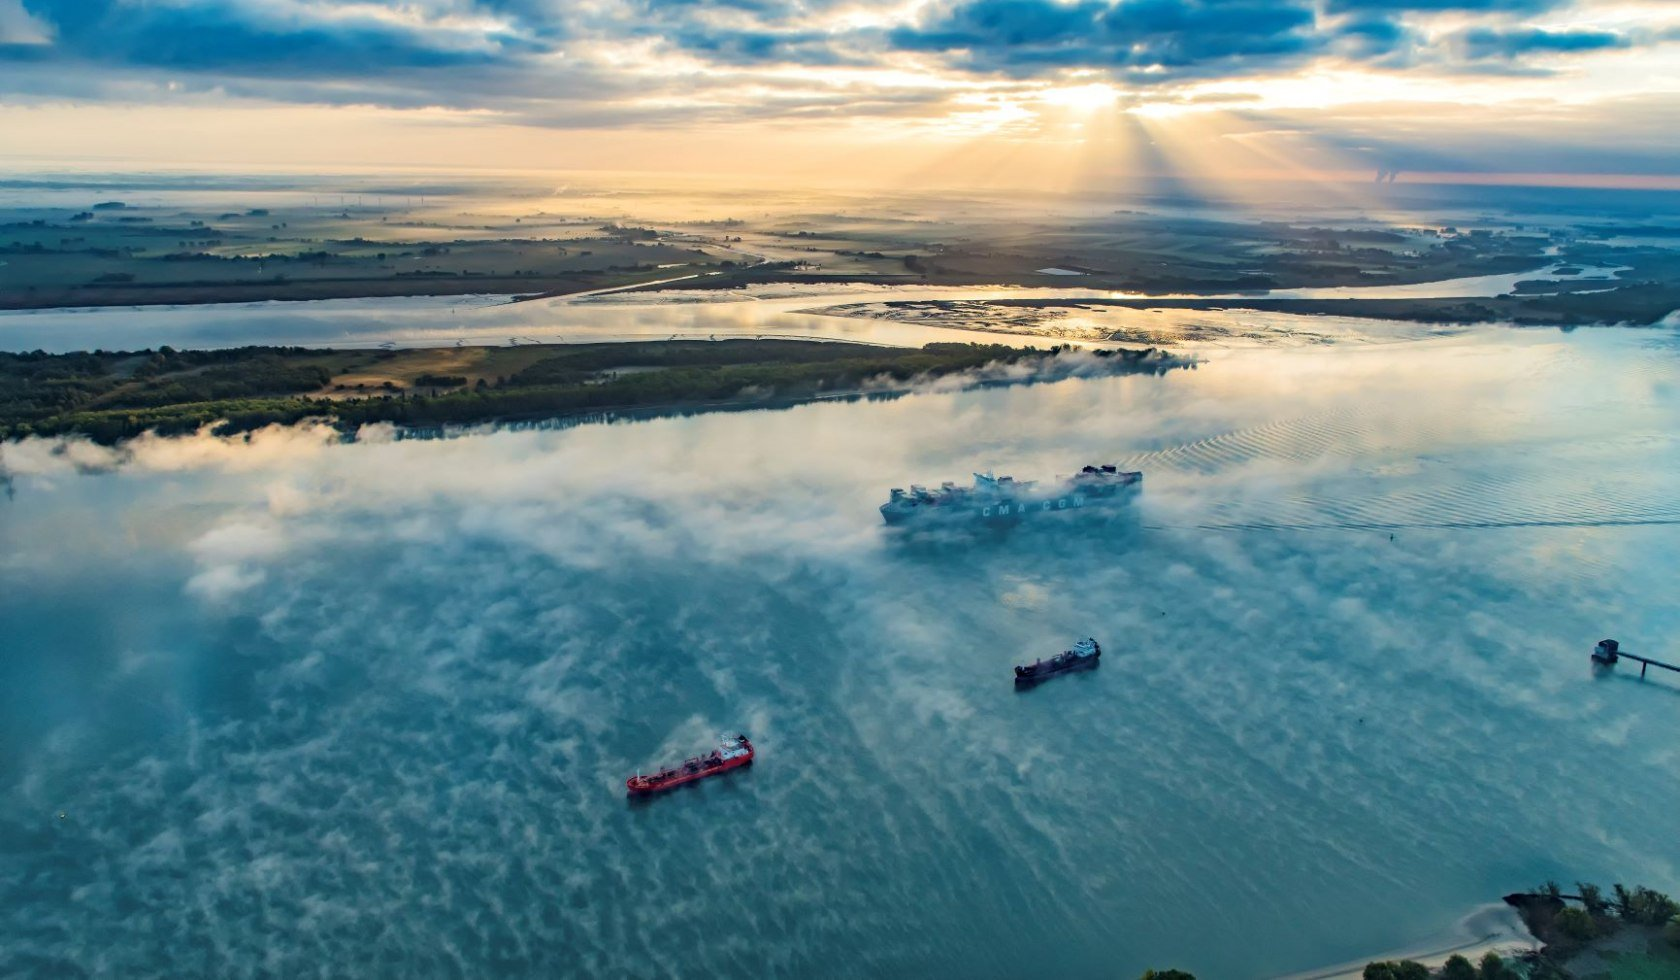 Container ships on the Elbe aerial photograph